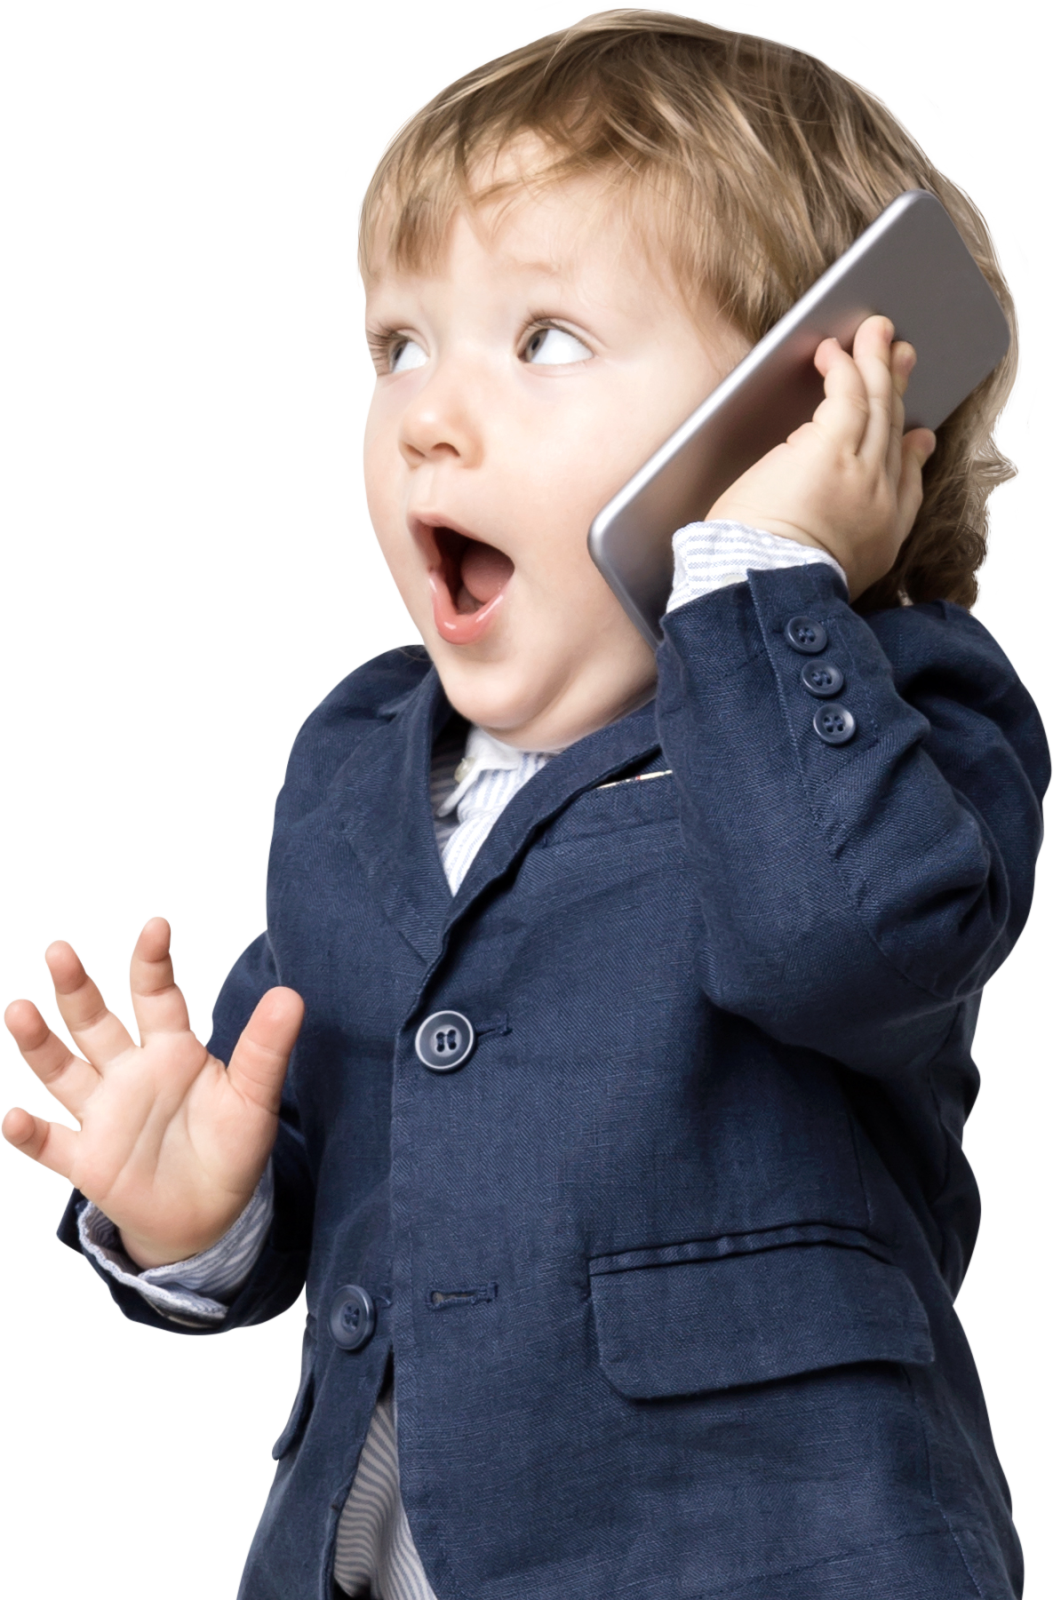 Baby speaking on the phone